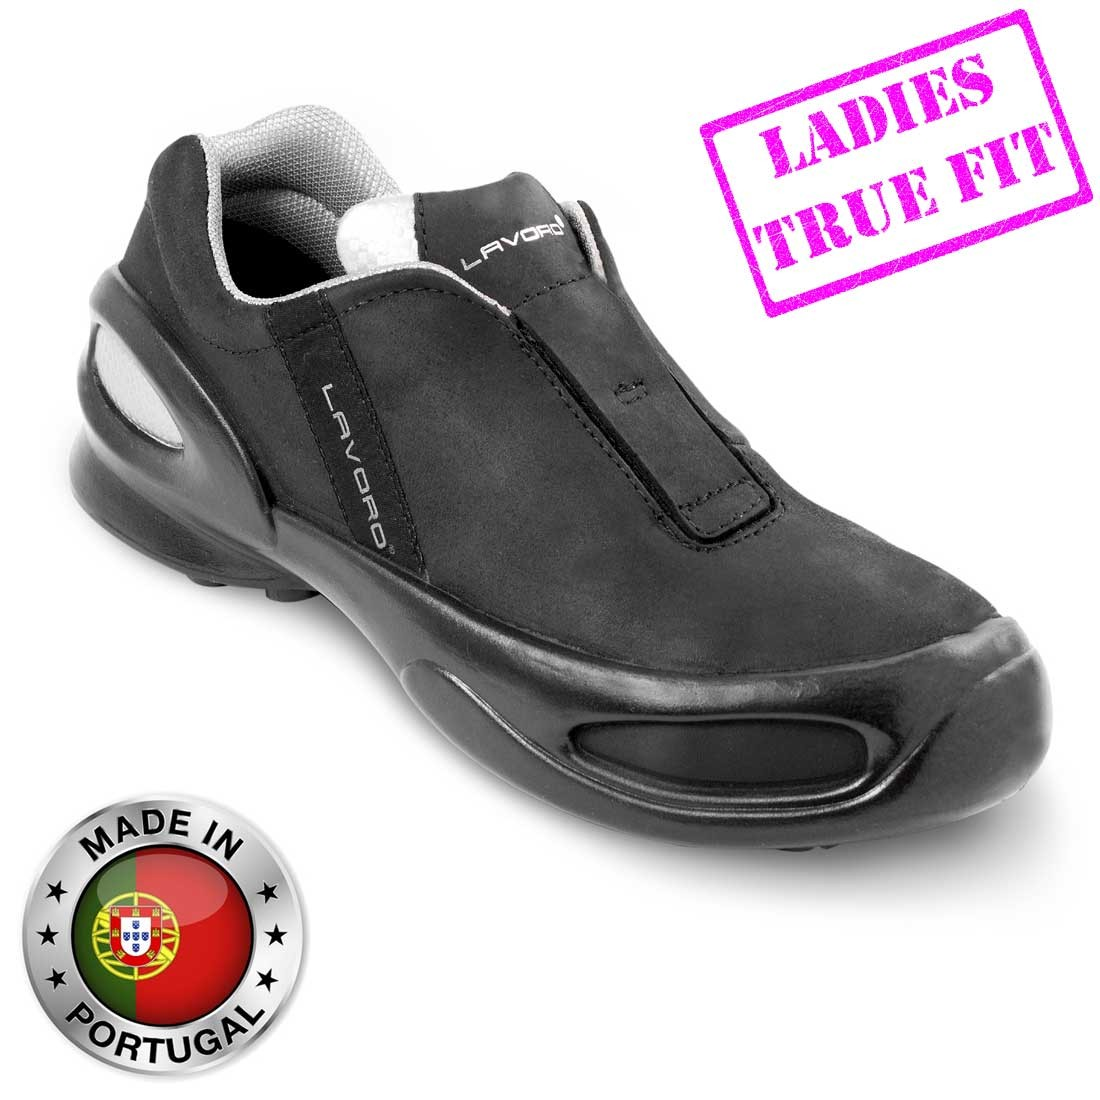 Lavoro Cat Woman Black Nubuck Leather Ladies Steel Toe Cap Safety Shoes